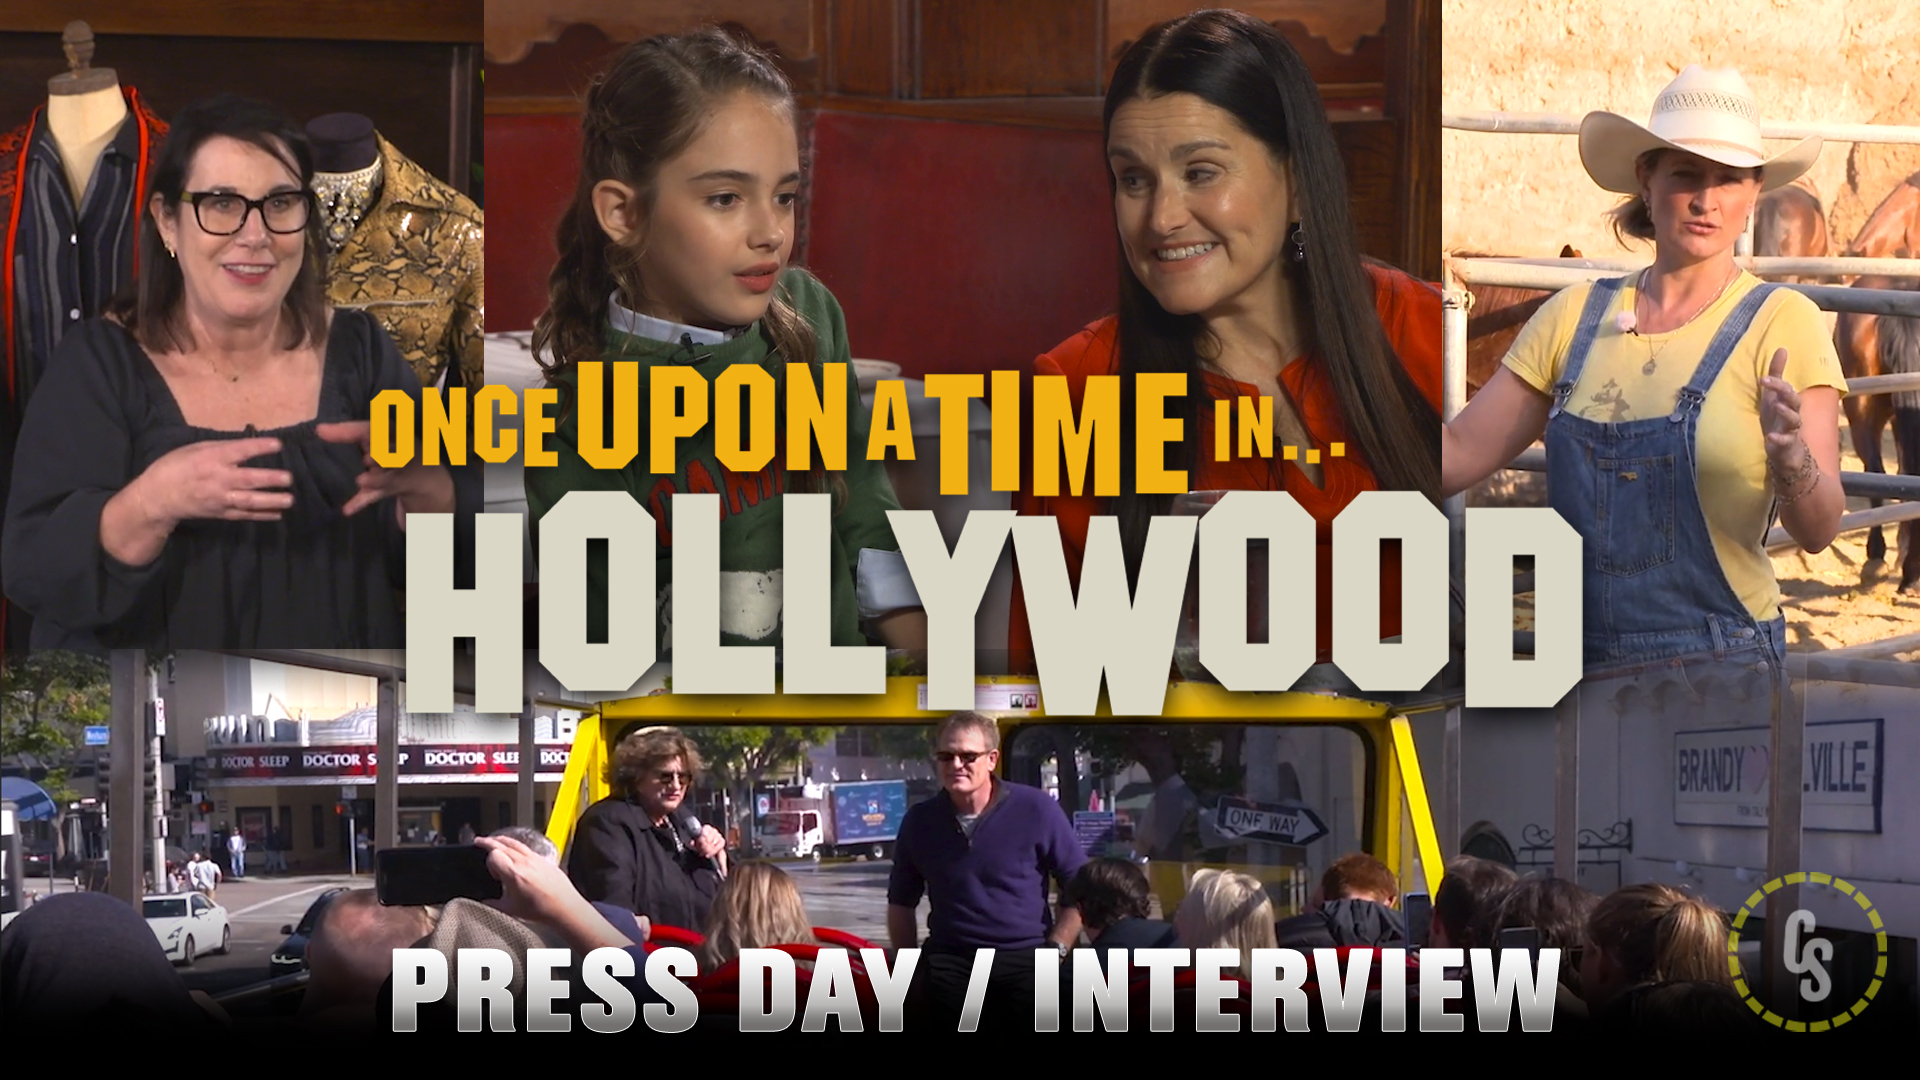 CS Video: Once Upon a Time in Hollywood Press Day Footage!